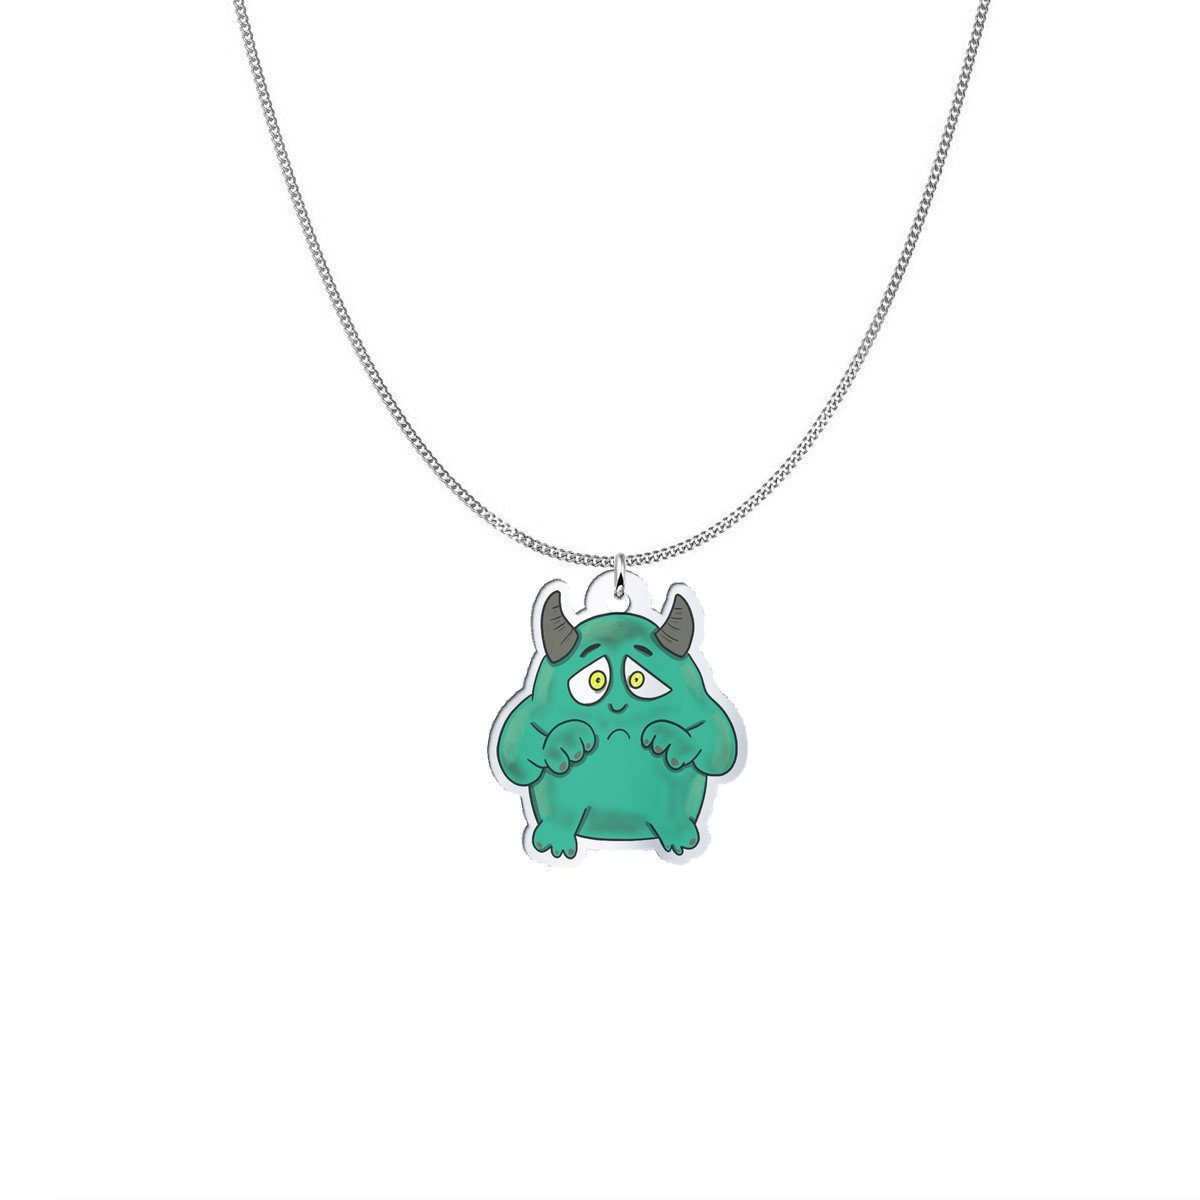 Pendant - CC The Interstitial Cystitis Monster Silver Necklace